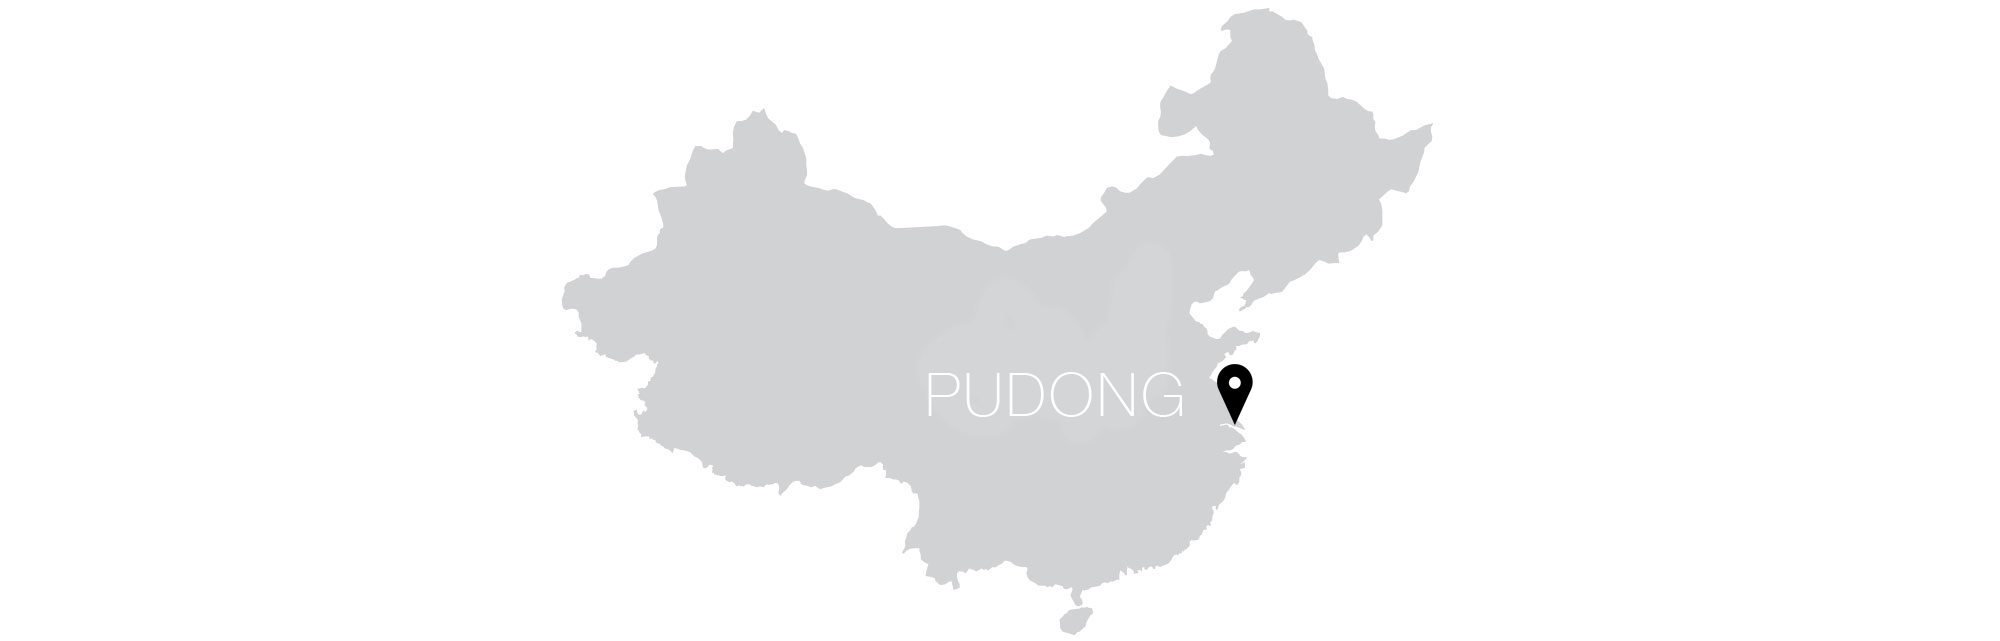 Pudong Map Text